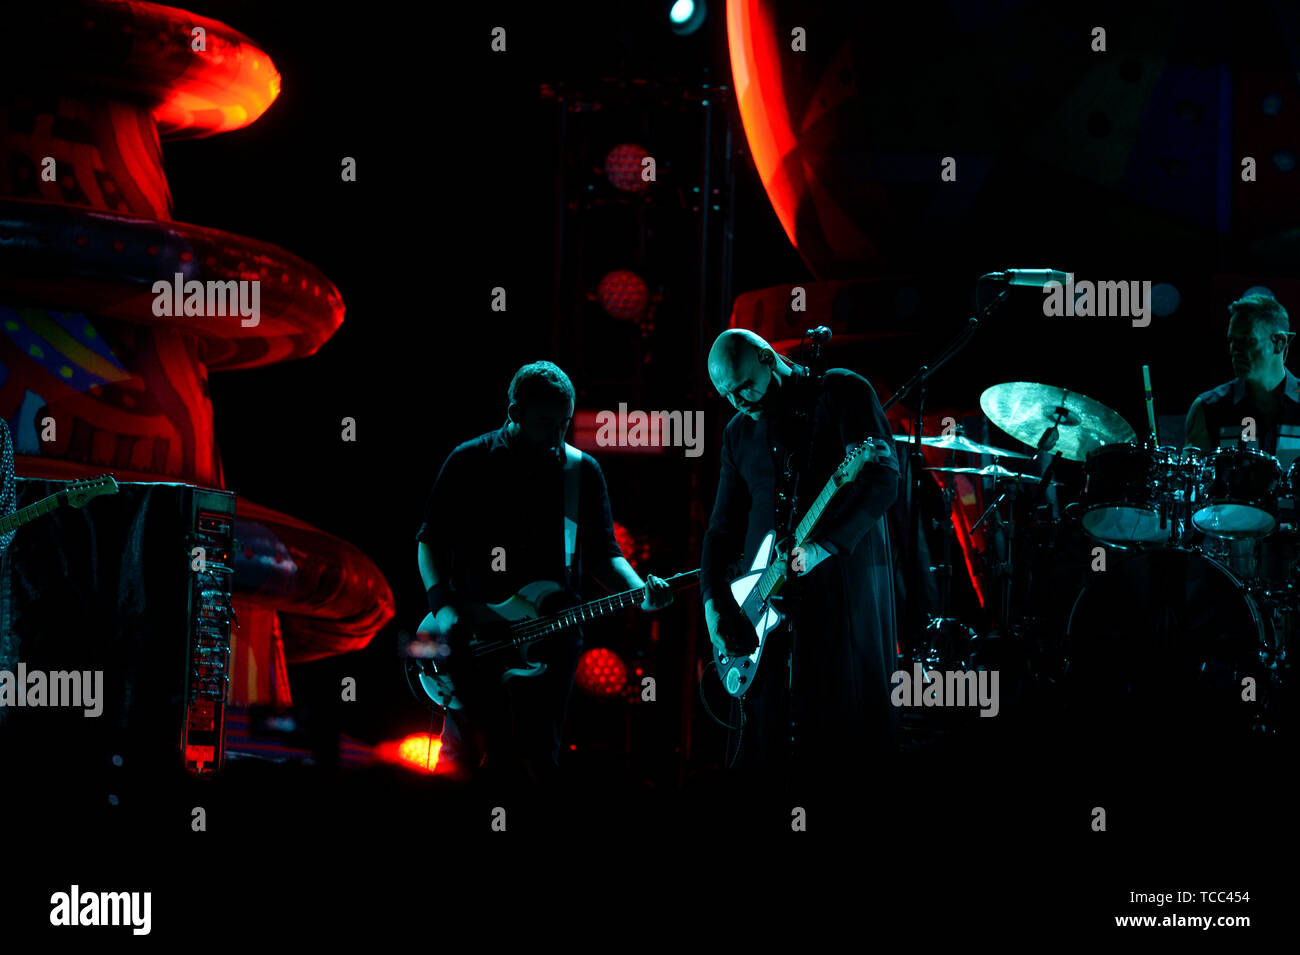 Prague, Czech Republic. 06th June, 2019. American band The Smashing Pumpkins performs in Prague, Czech Republic, on June 6, 2019. On the center of the photo is seen guitarist and singer of the band Billy Corgan. Credit: Katerina Sulova/CTK Photo/Alamy Live News - Stock Image